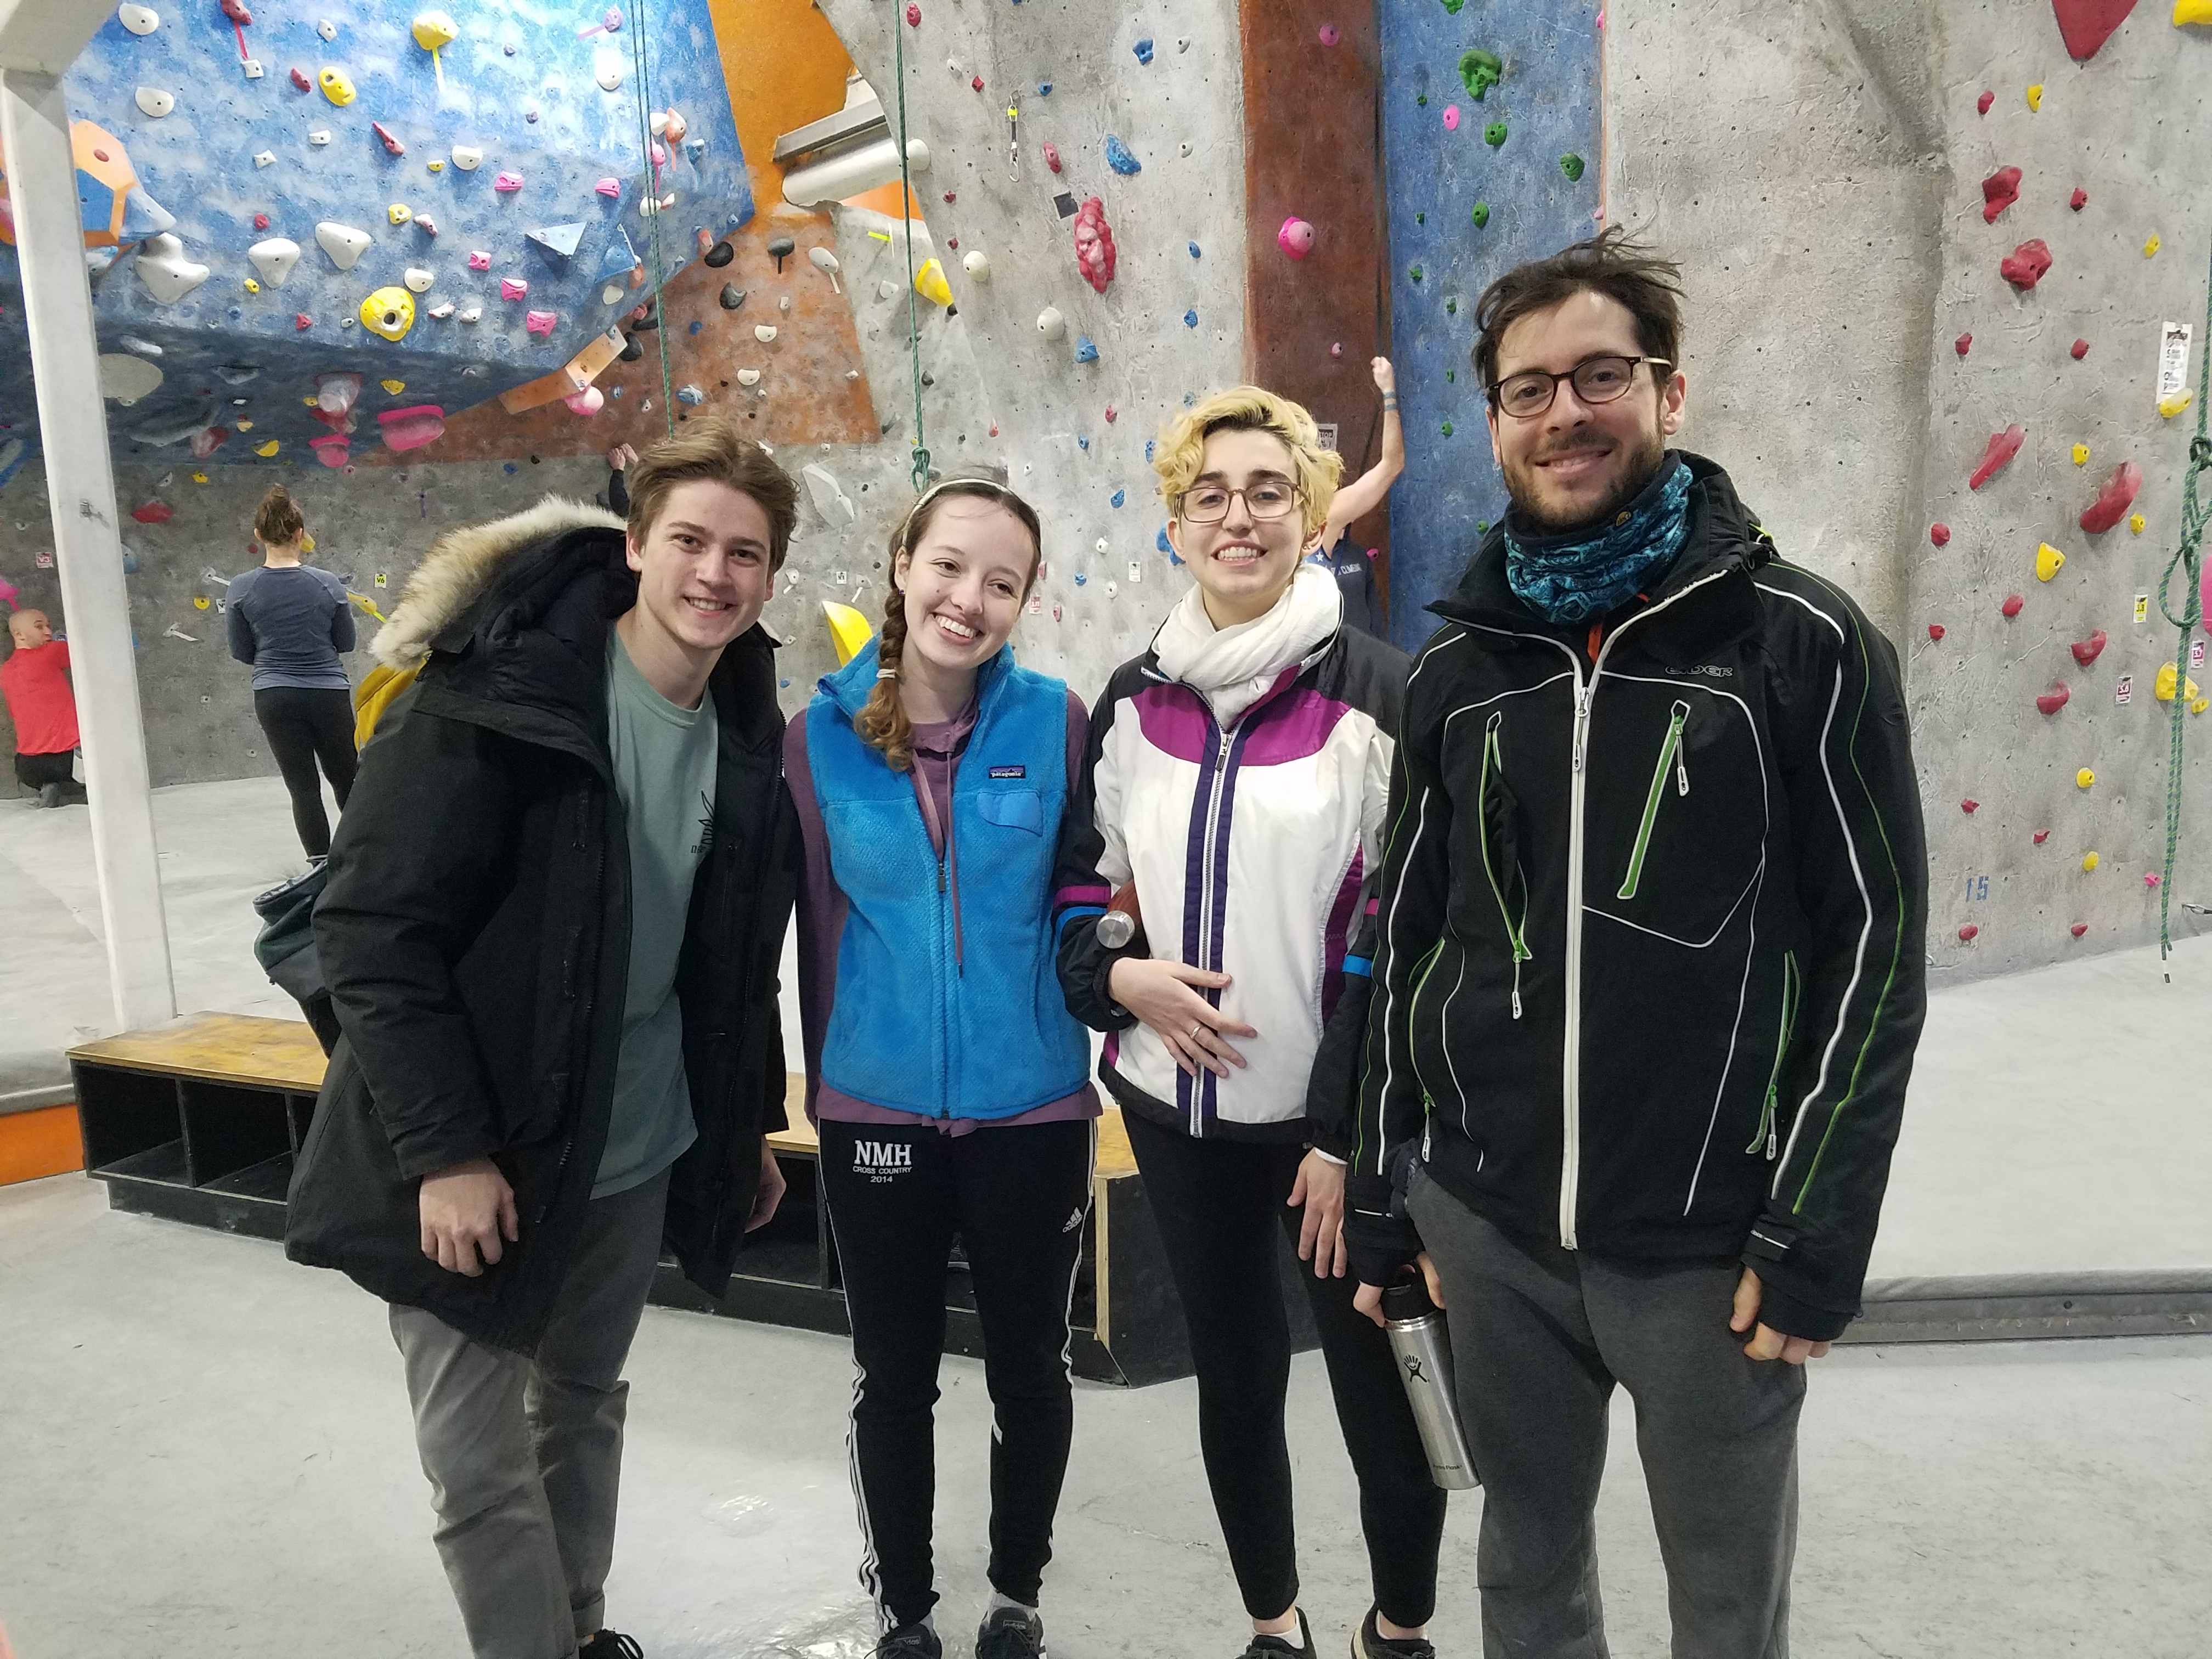 Students at a rock climbing event